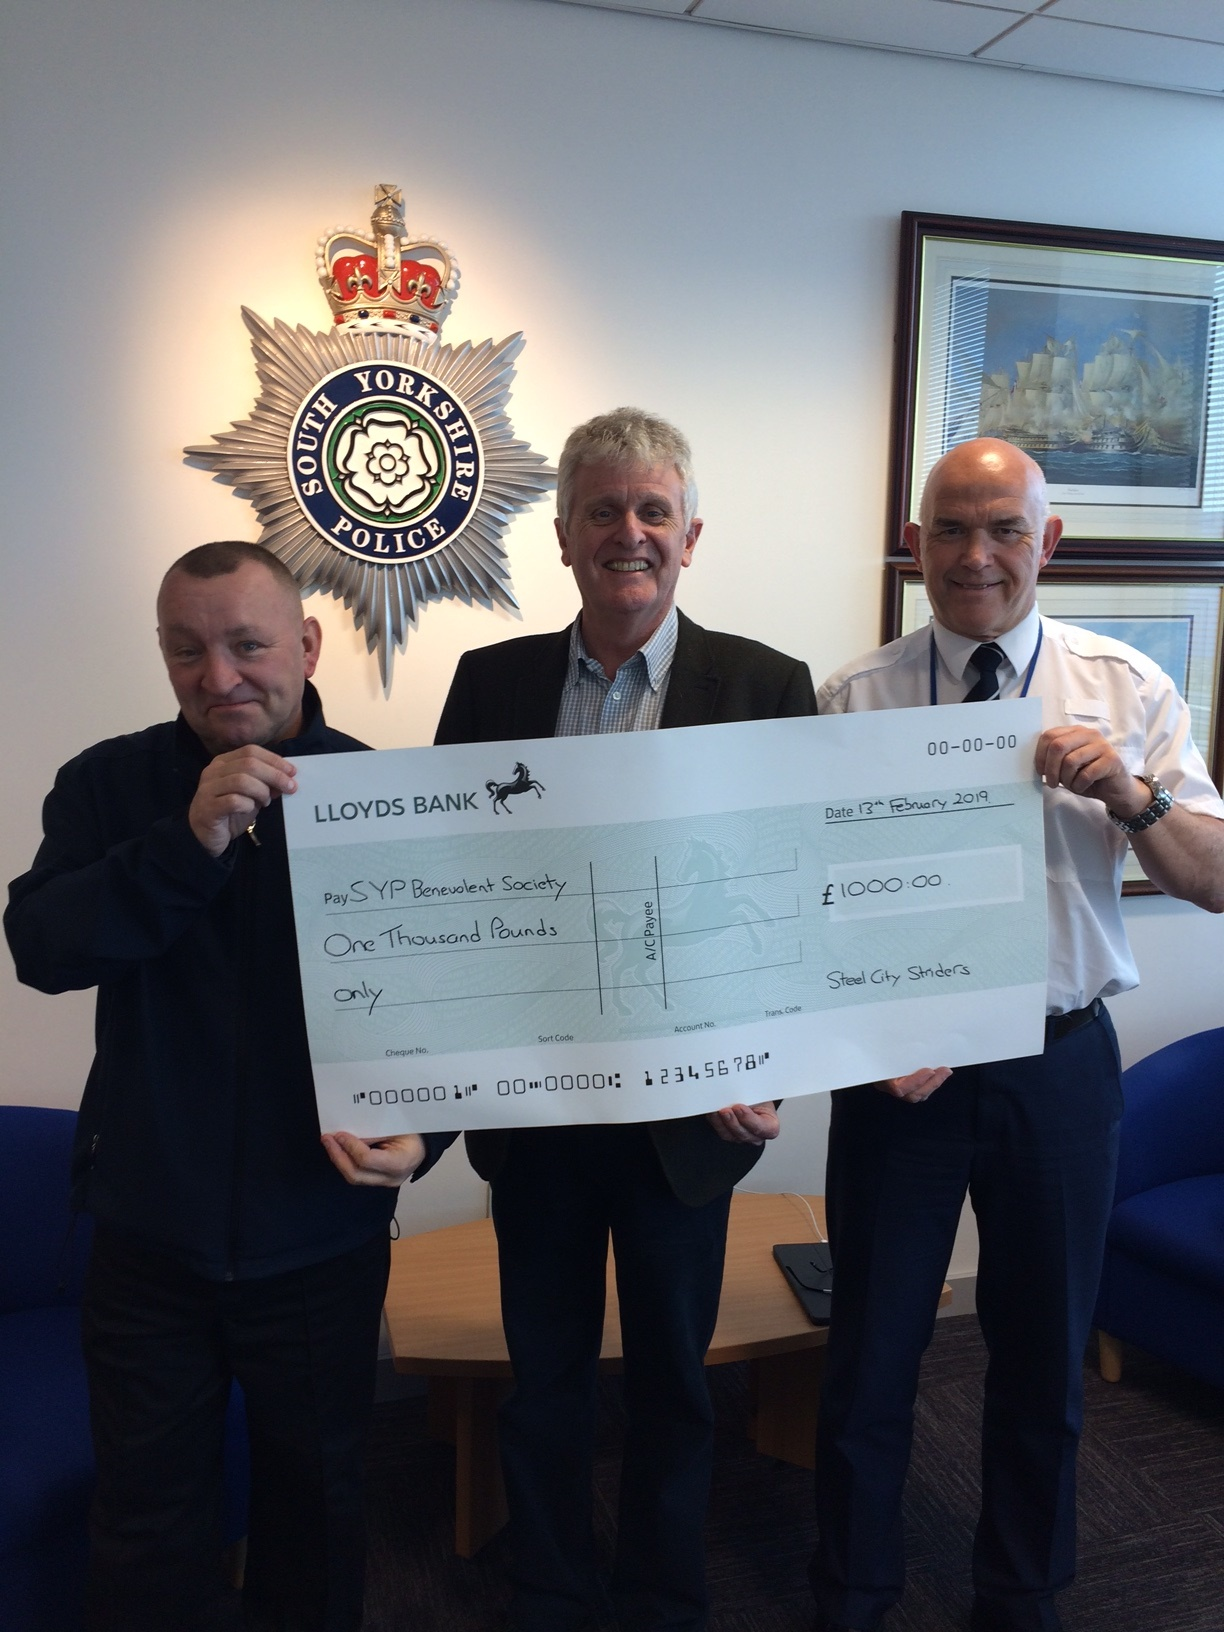 Richard Dunk, event organiser, presents £1,000 donation to Robert Dyson of SYP Benevolent Society and Clive Palmer of SYP